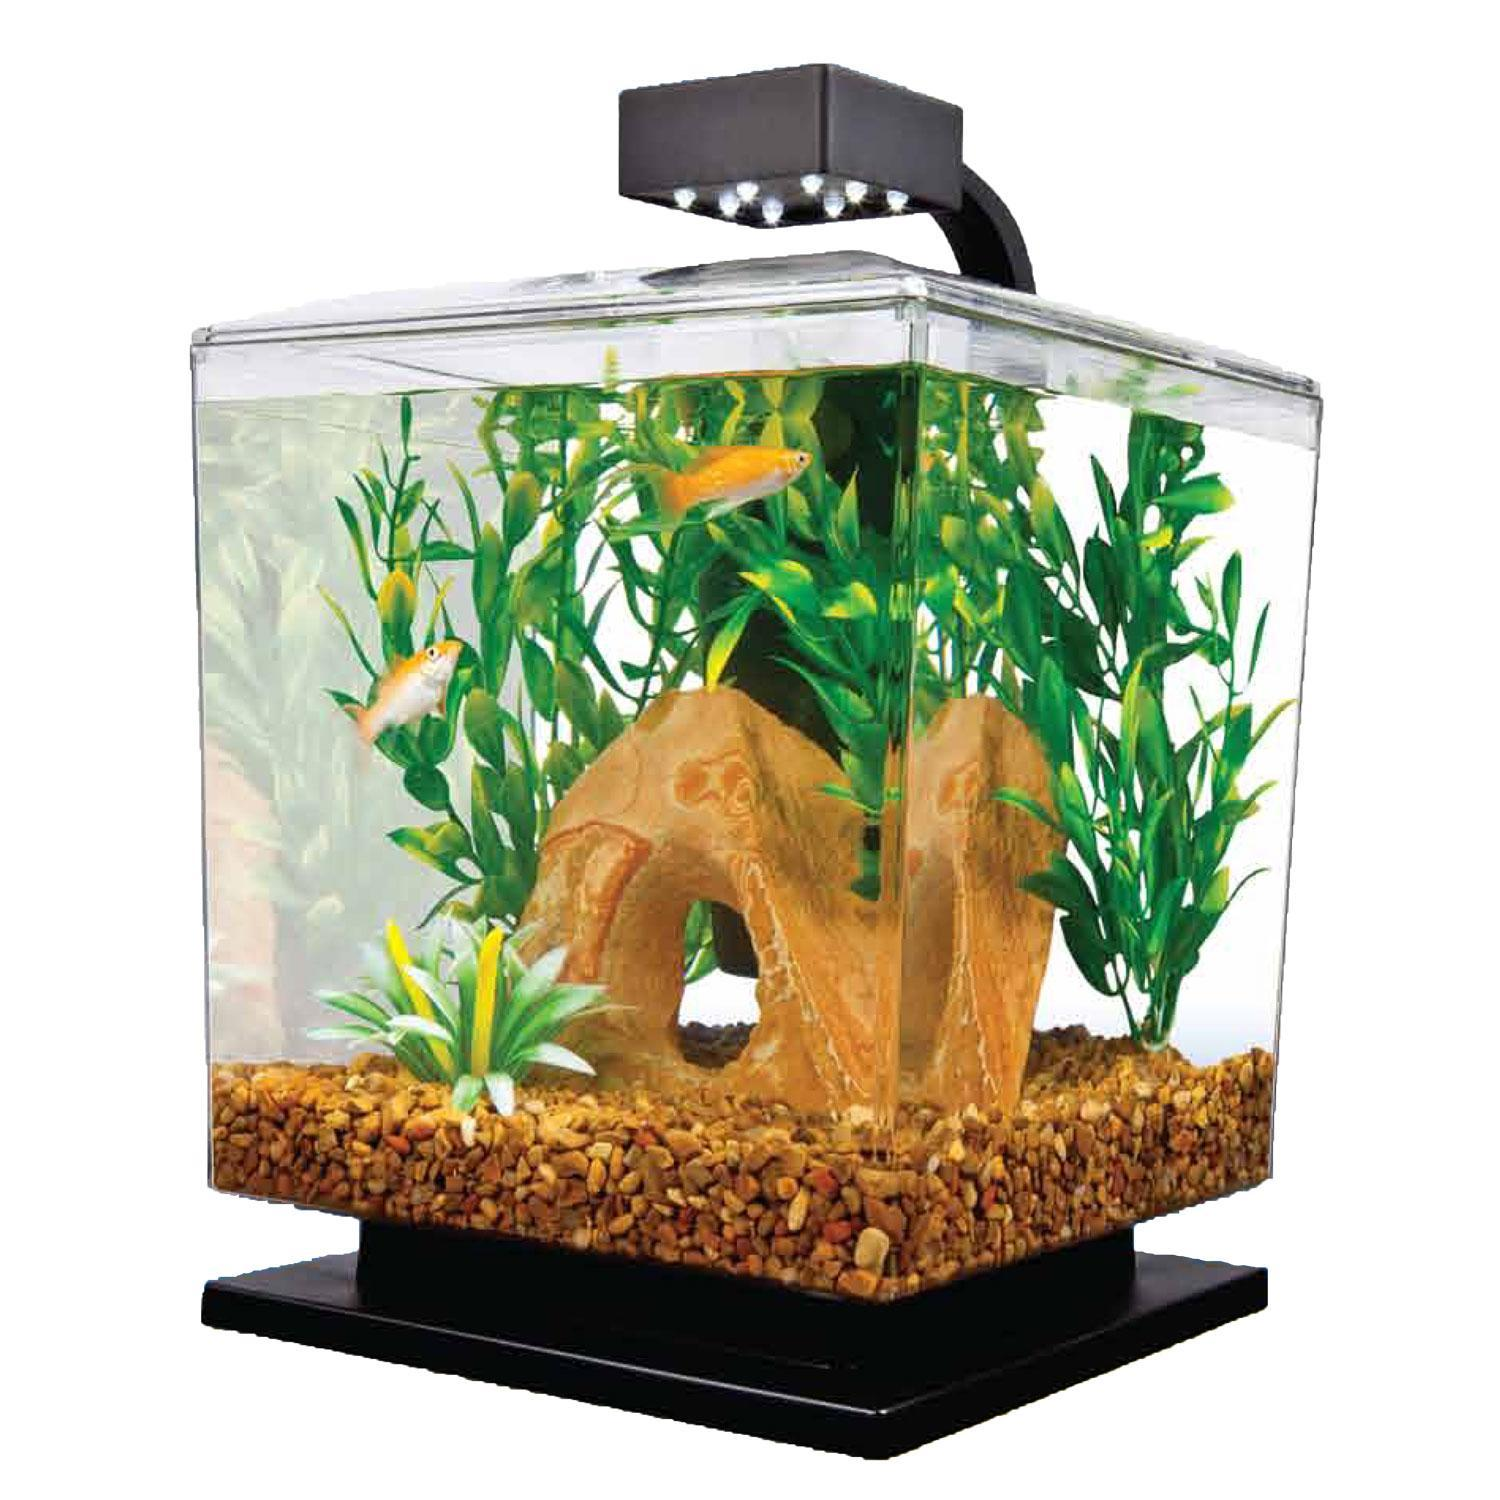 Tetra 1 5 gallon led desktop aquarium kit from for Tetra fish tank